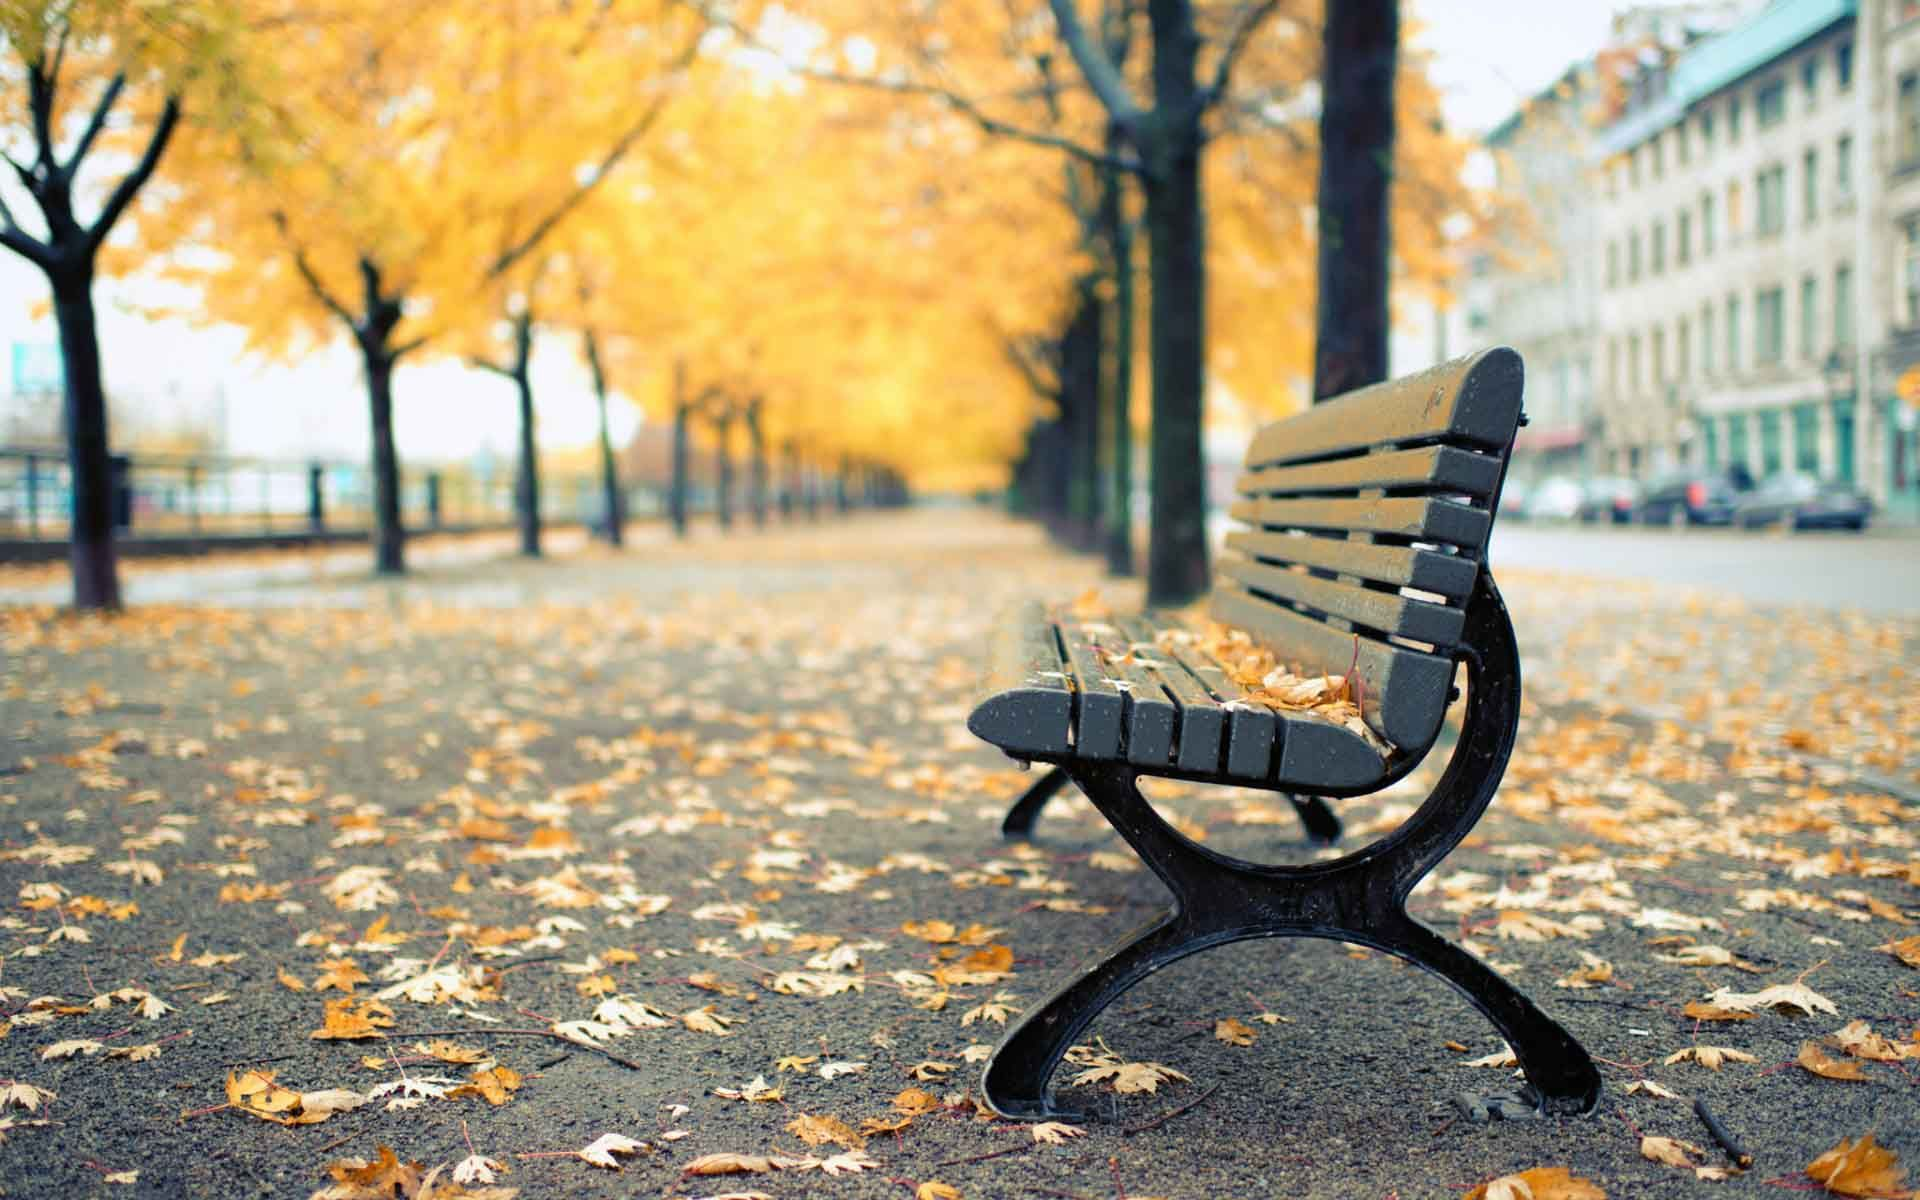 Bench In Park Hd Wallpaper Free Download Places To Visit Park